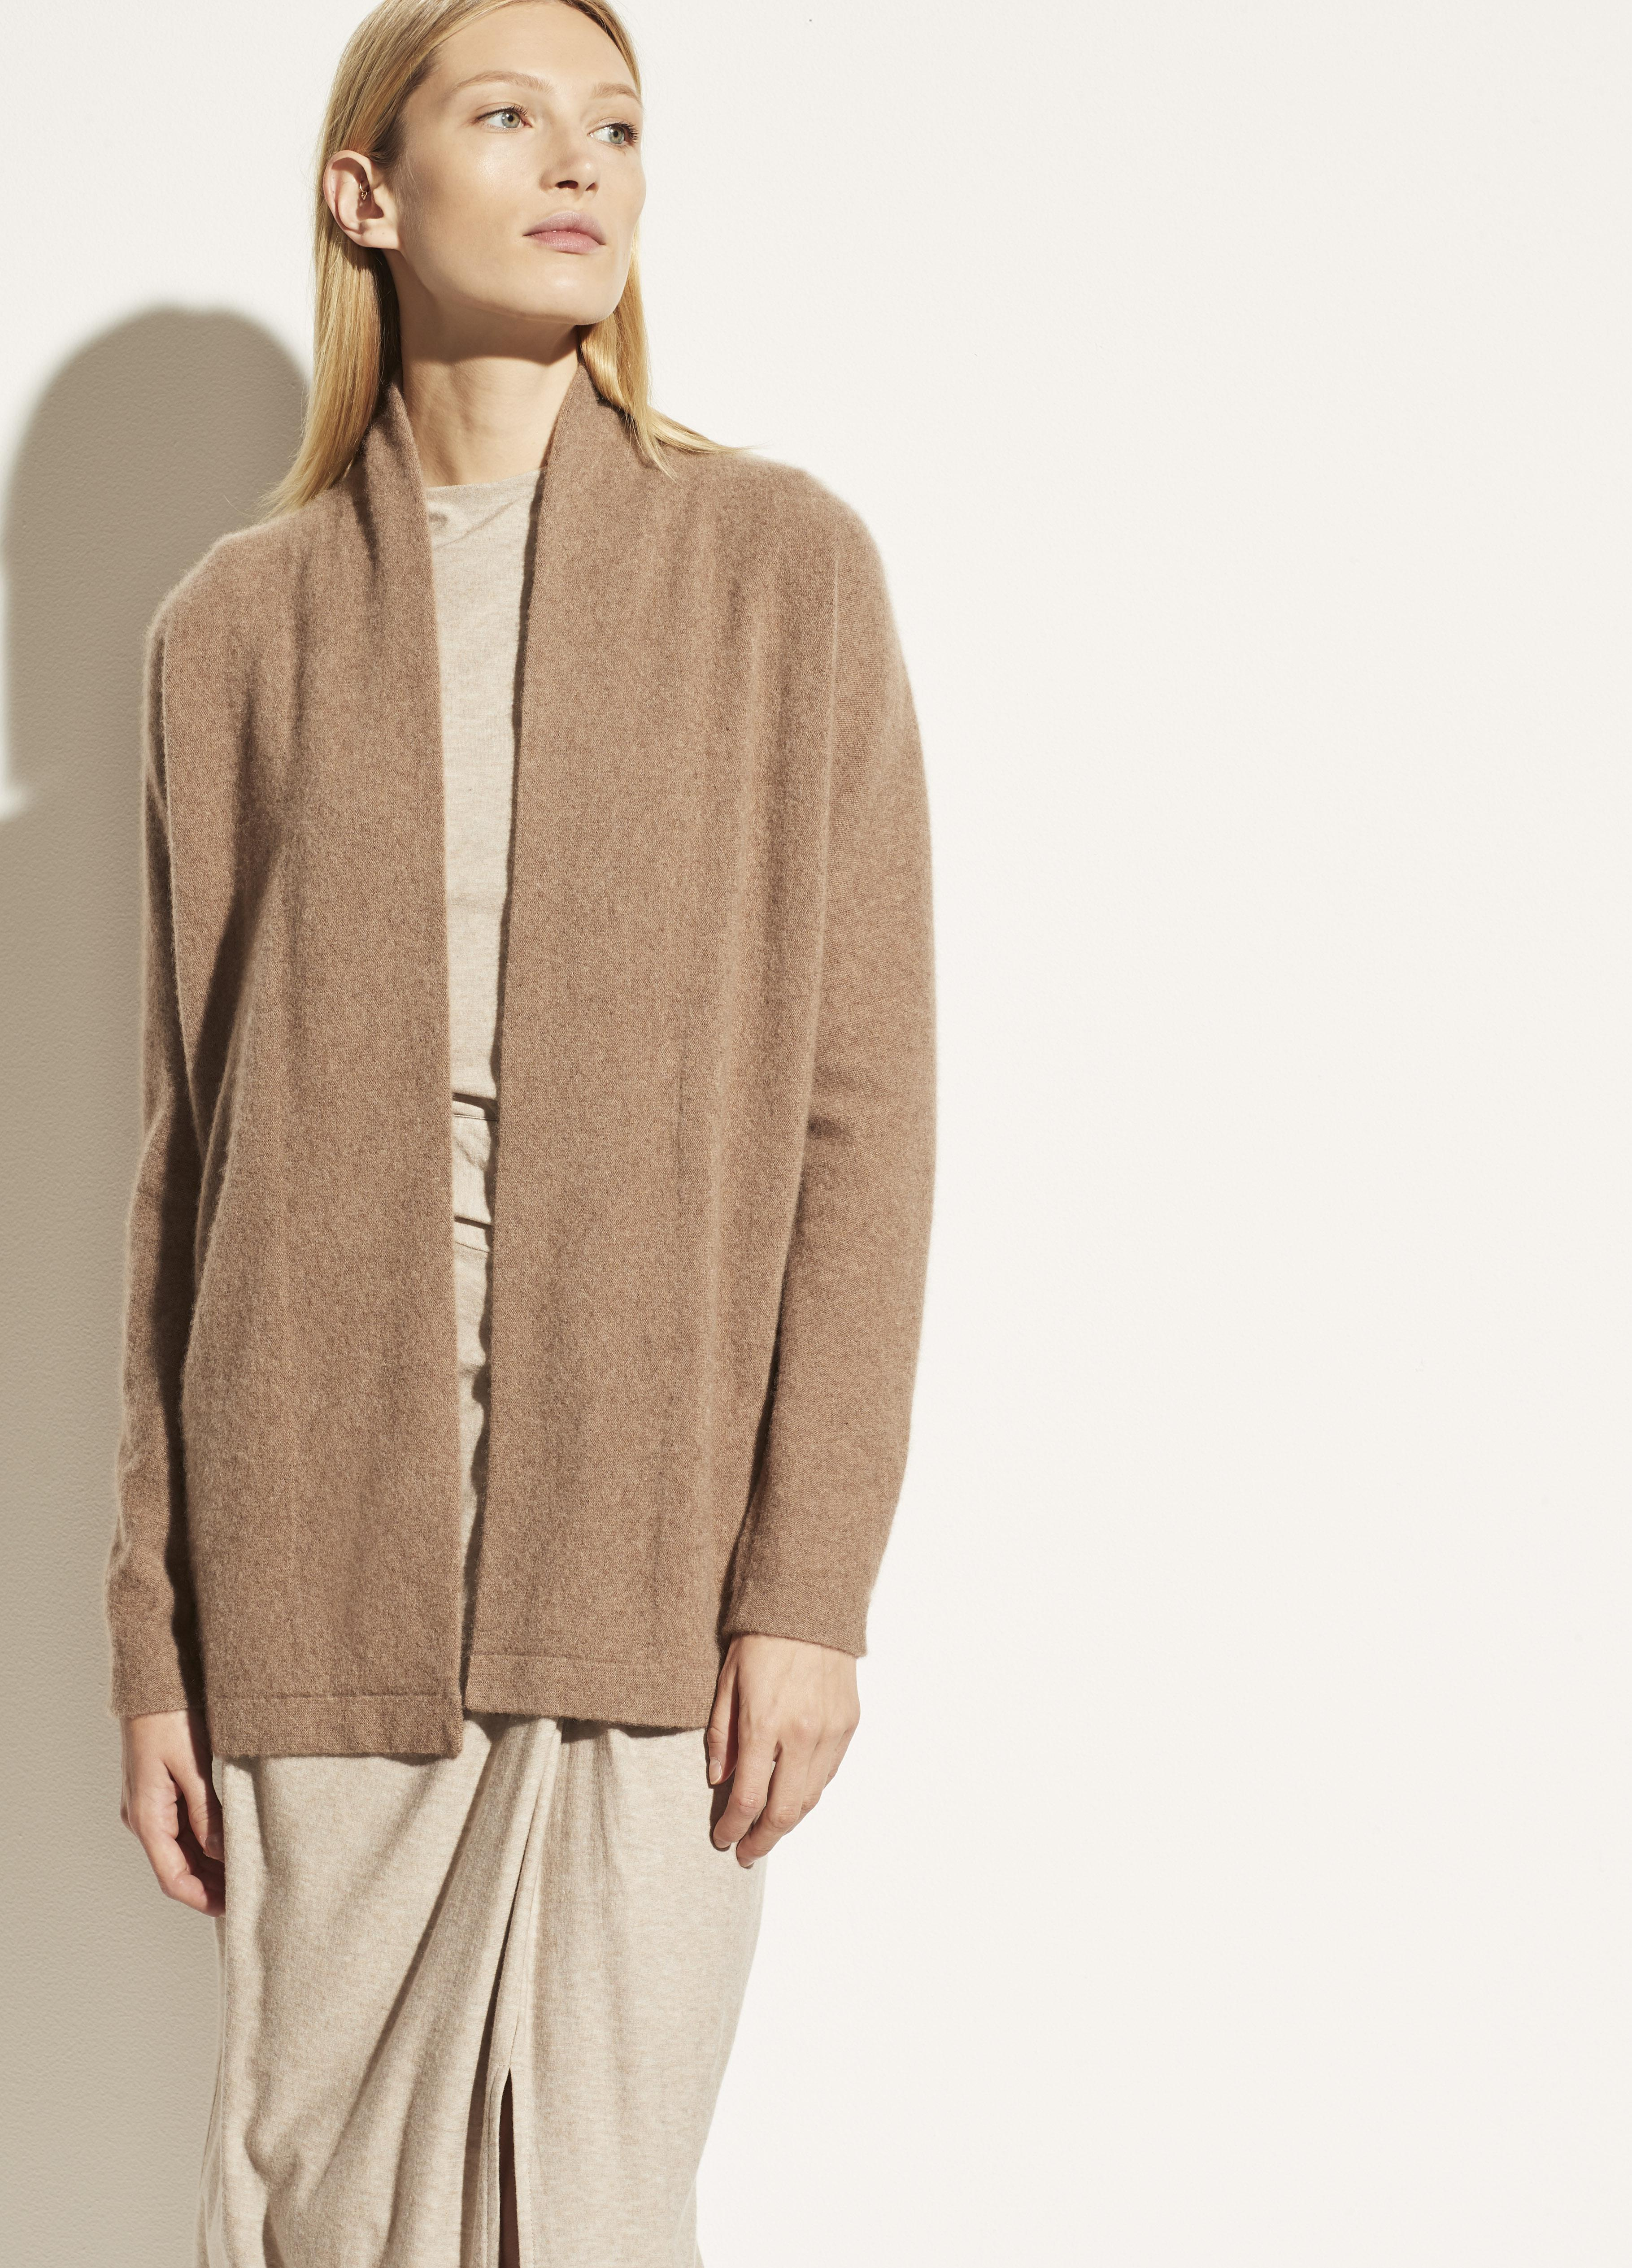 Boiled Cashmere Open Cardigan